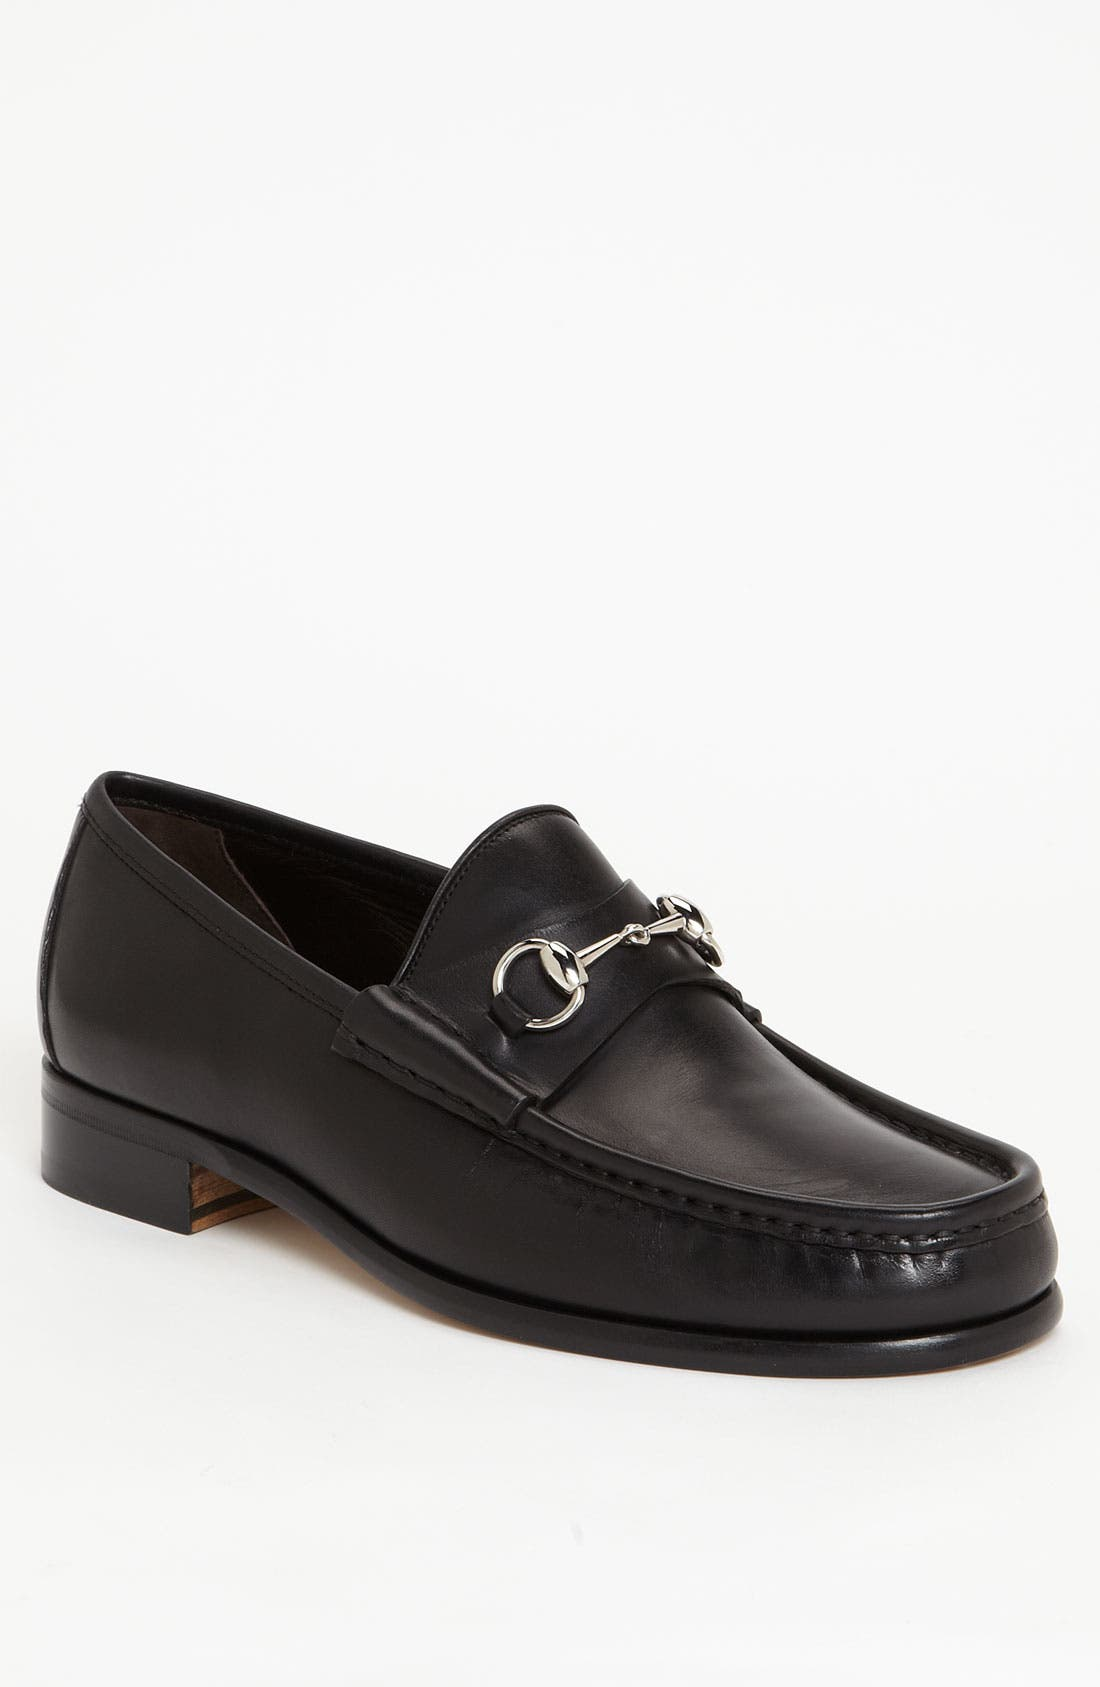 Alternate Image 1 Selected - Gucci Classic Leather Moccasin